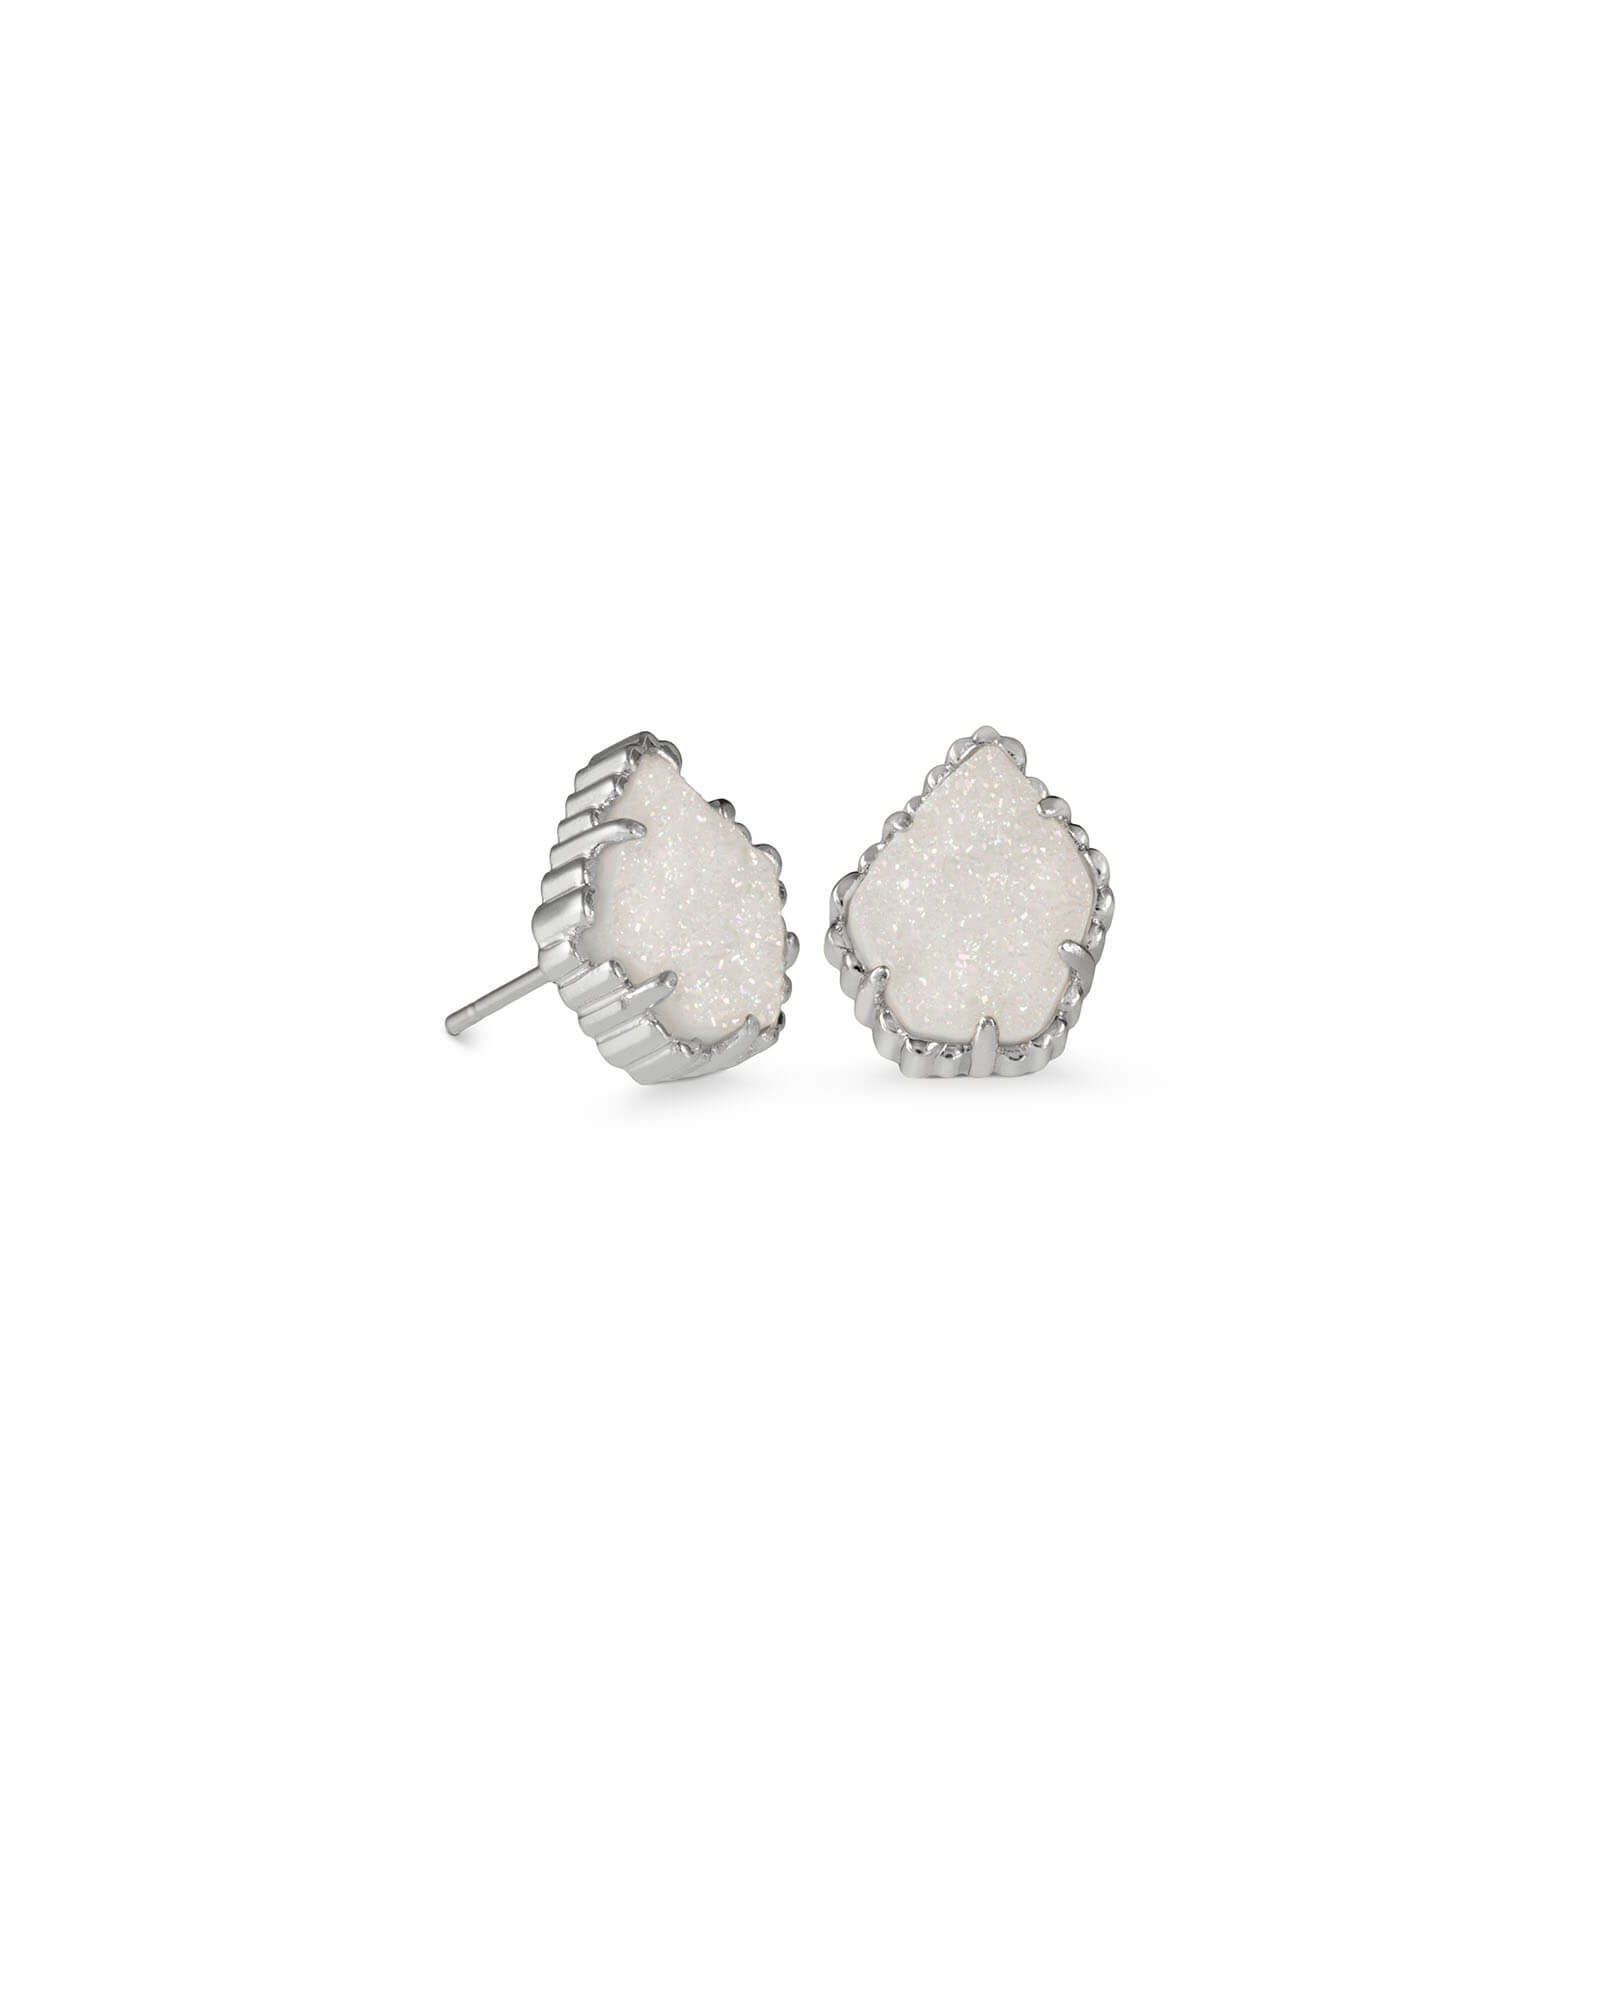 Tessa Silver Stud Earrings in Iridescent Drusy